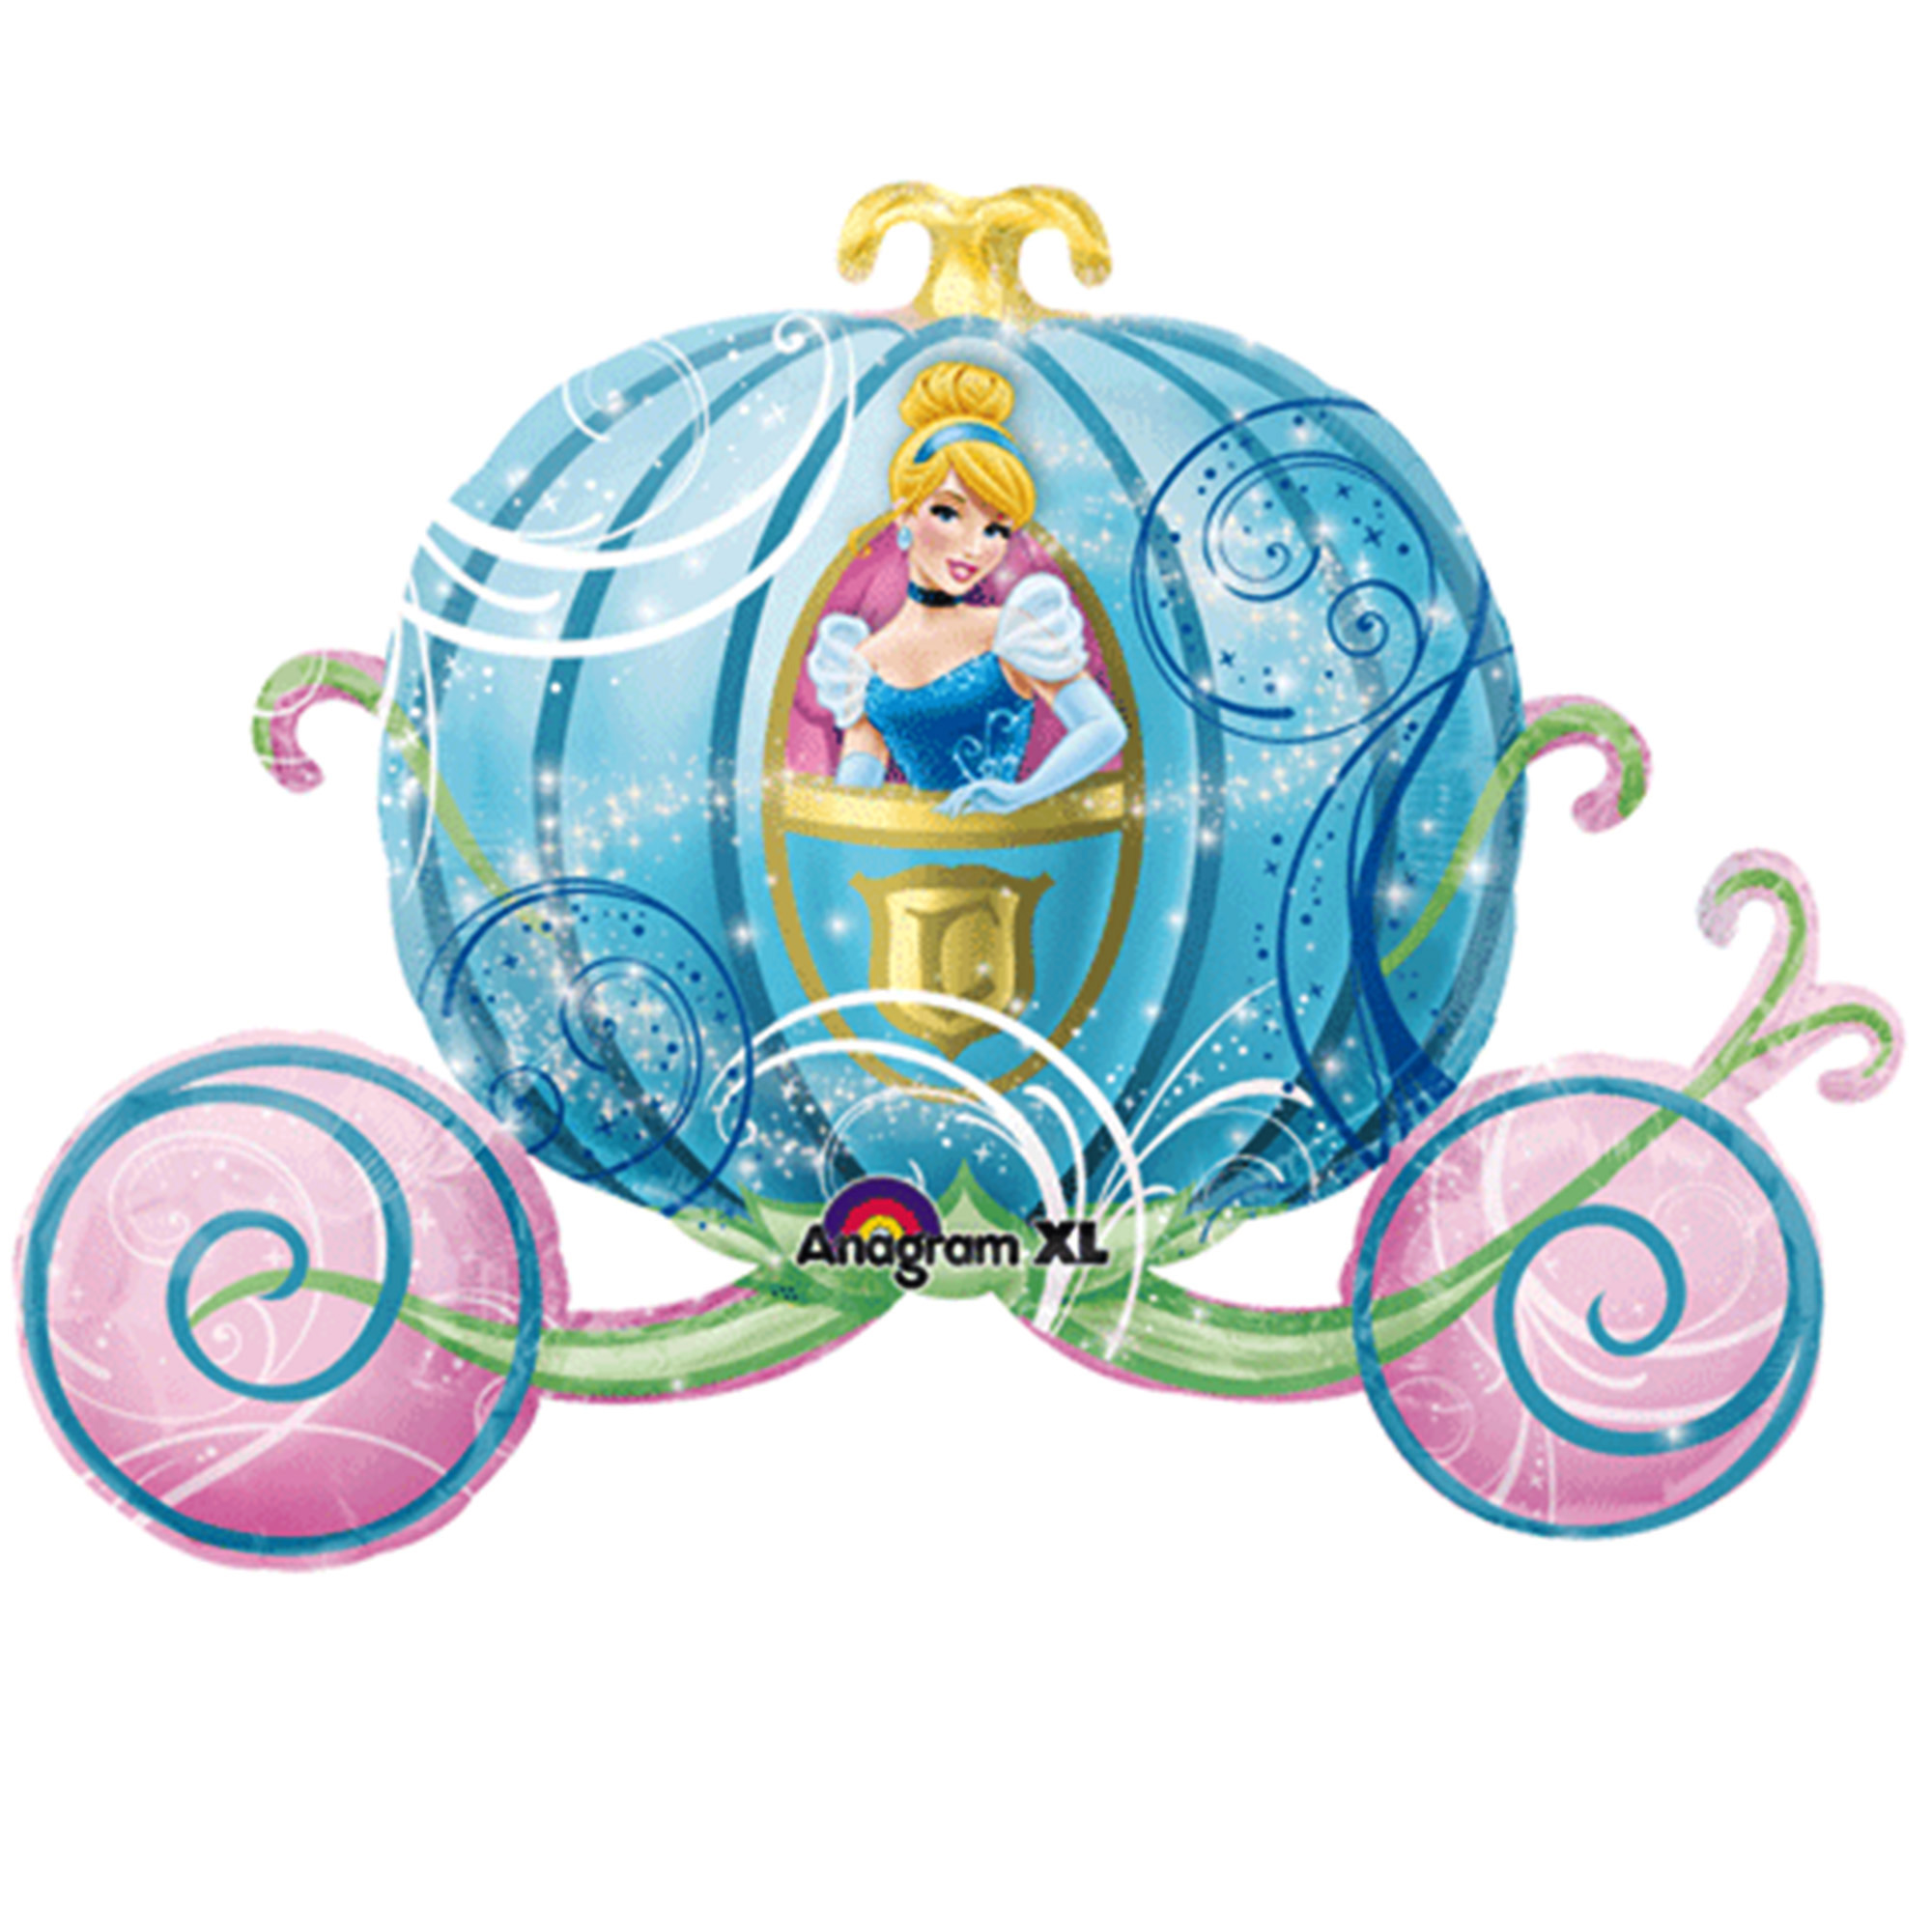 Disney Princess Cinderella Carriage Foil Balloon 33""